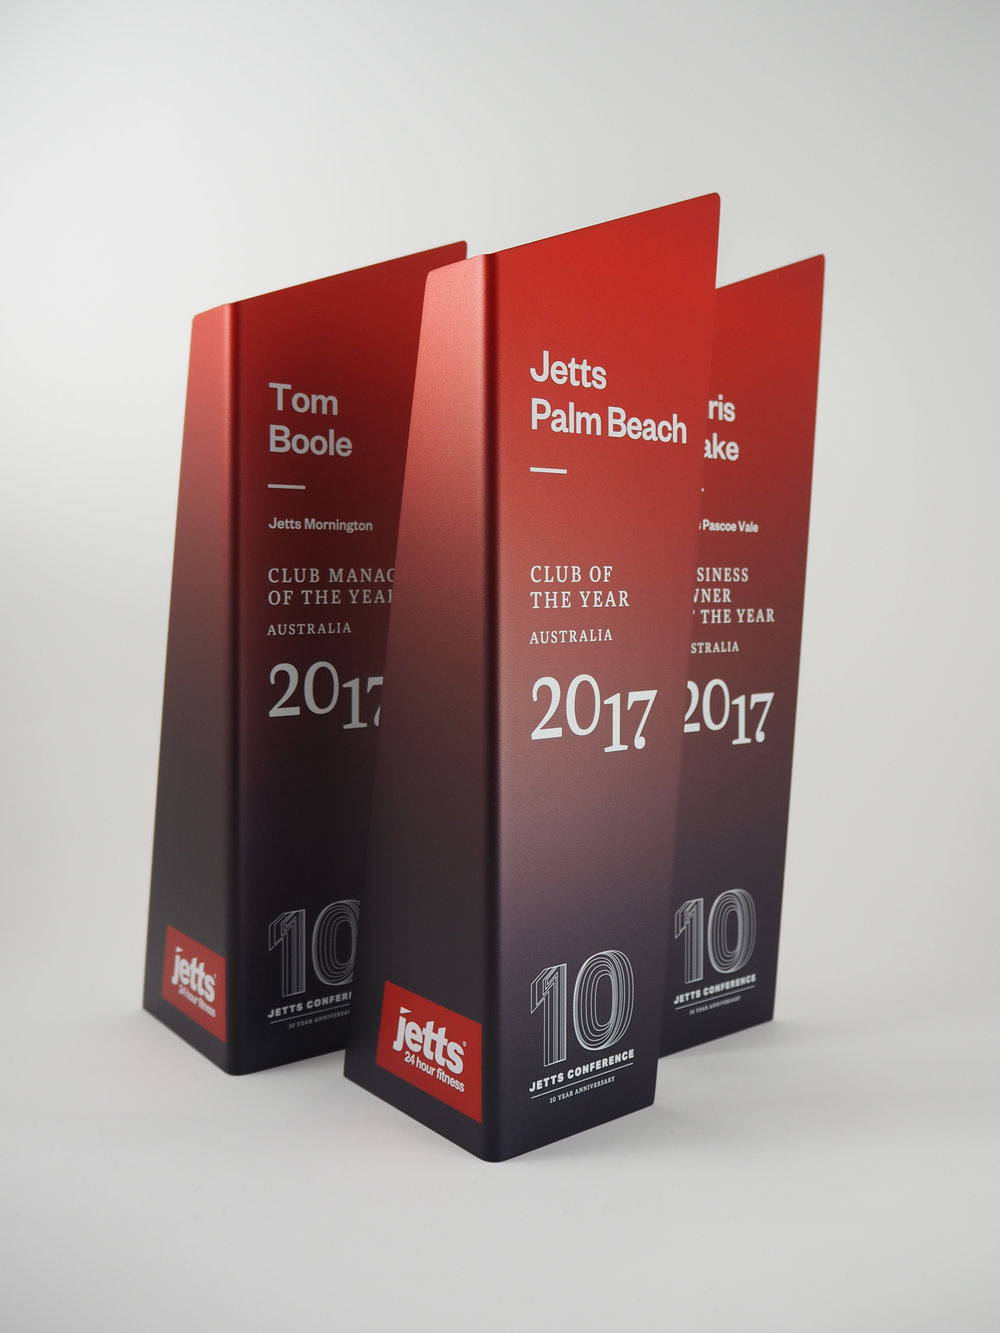 Jetts-eco-aluminium-trophy-award-02.jpg